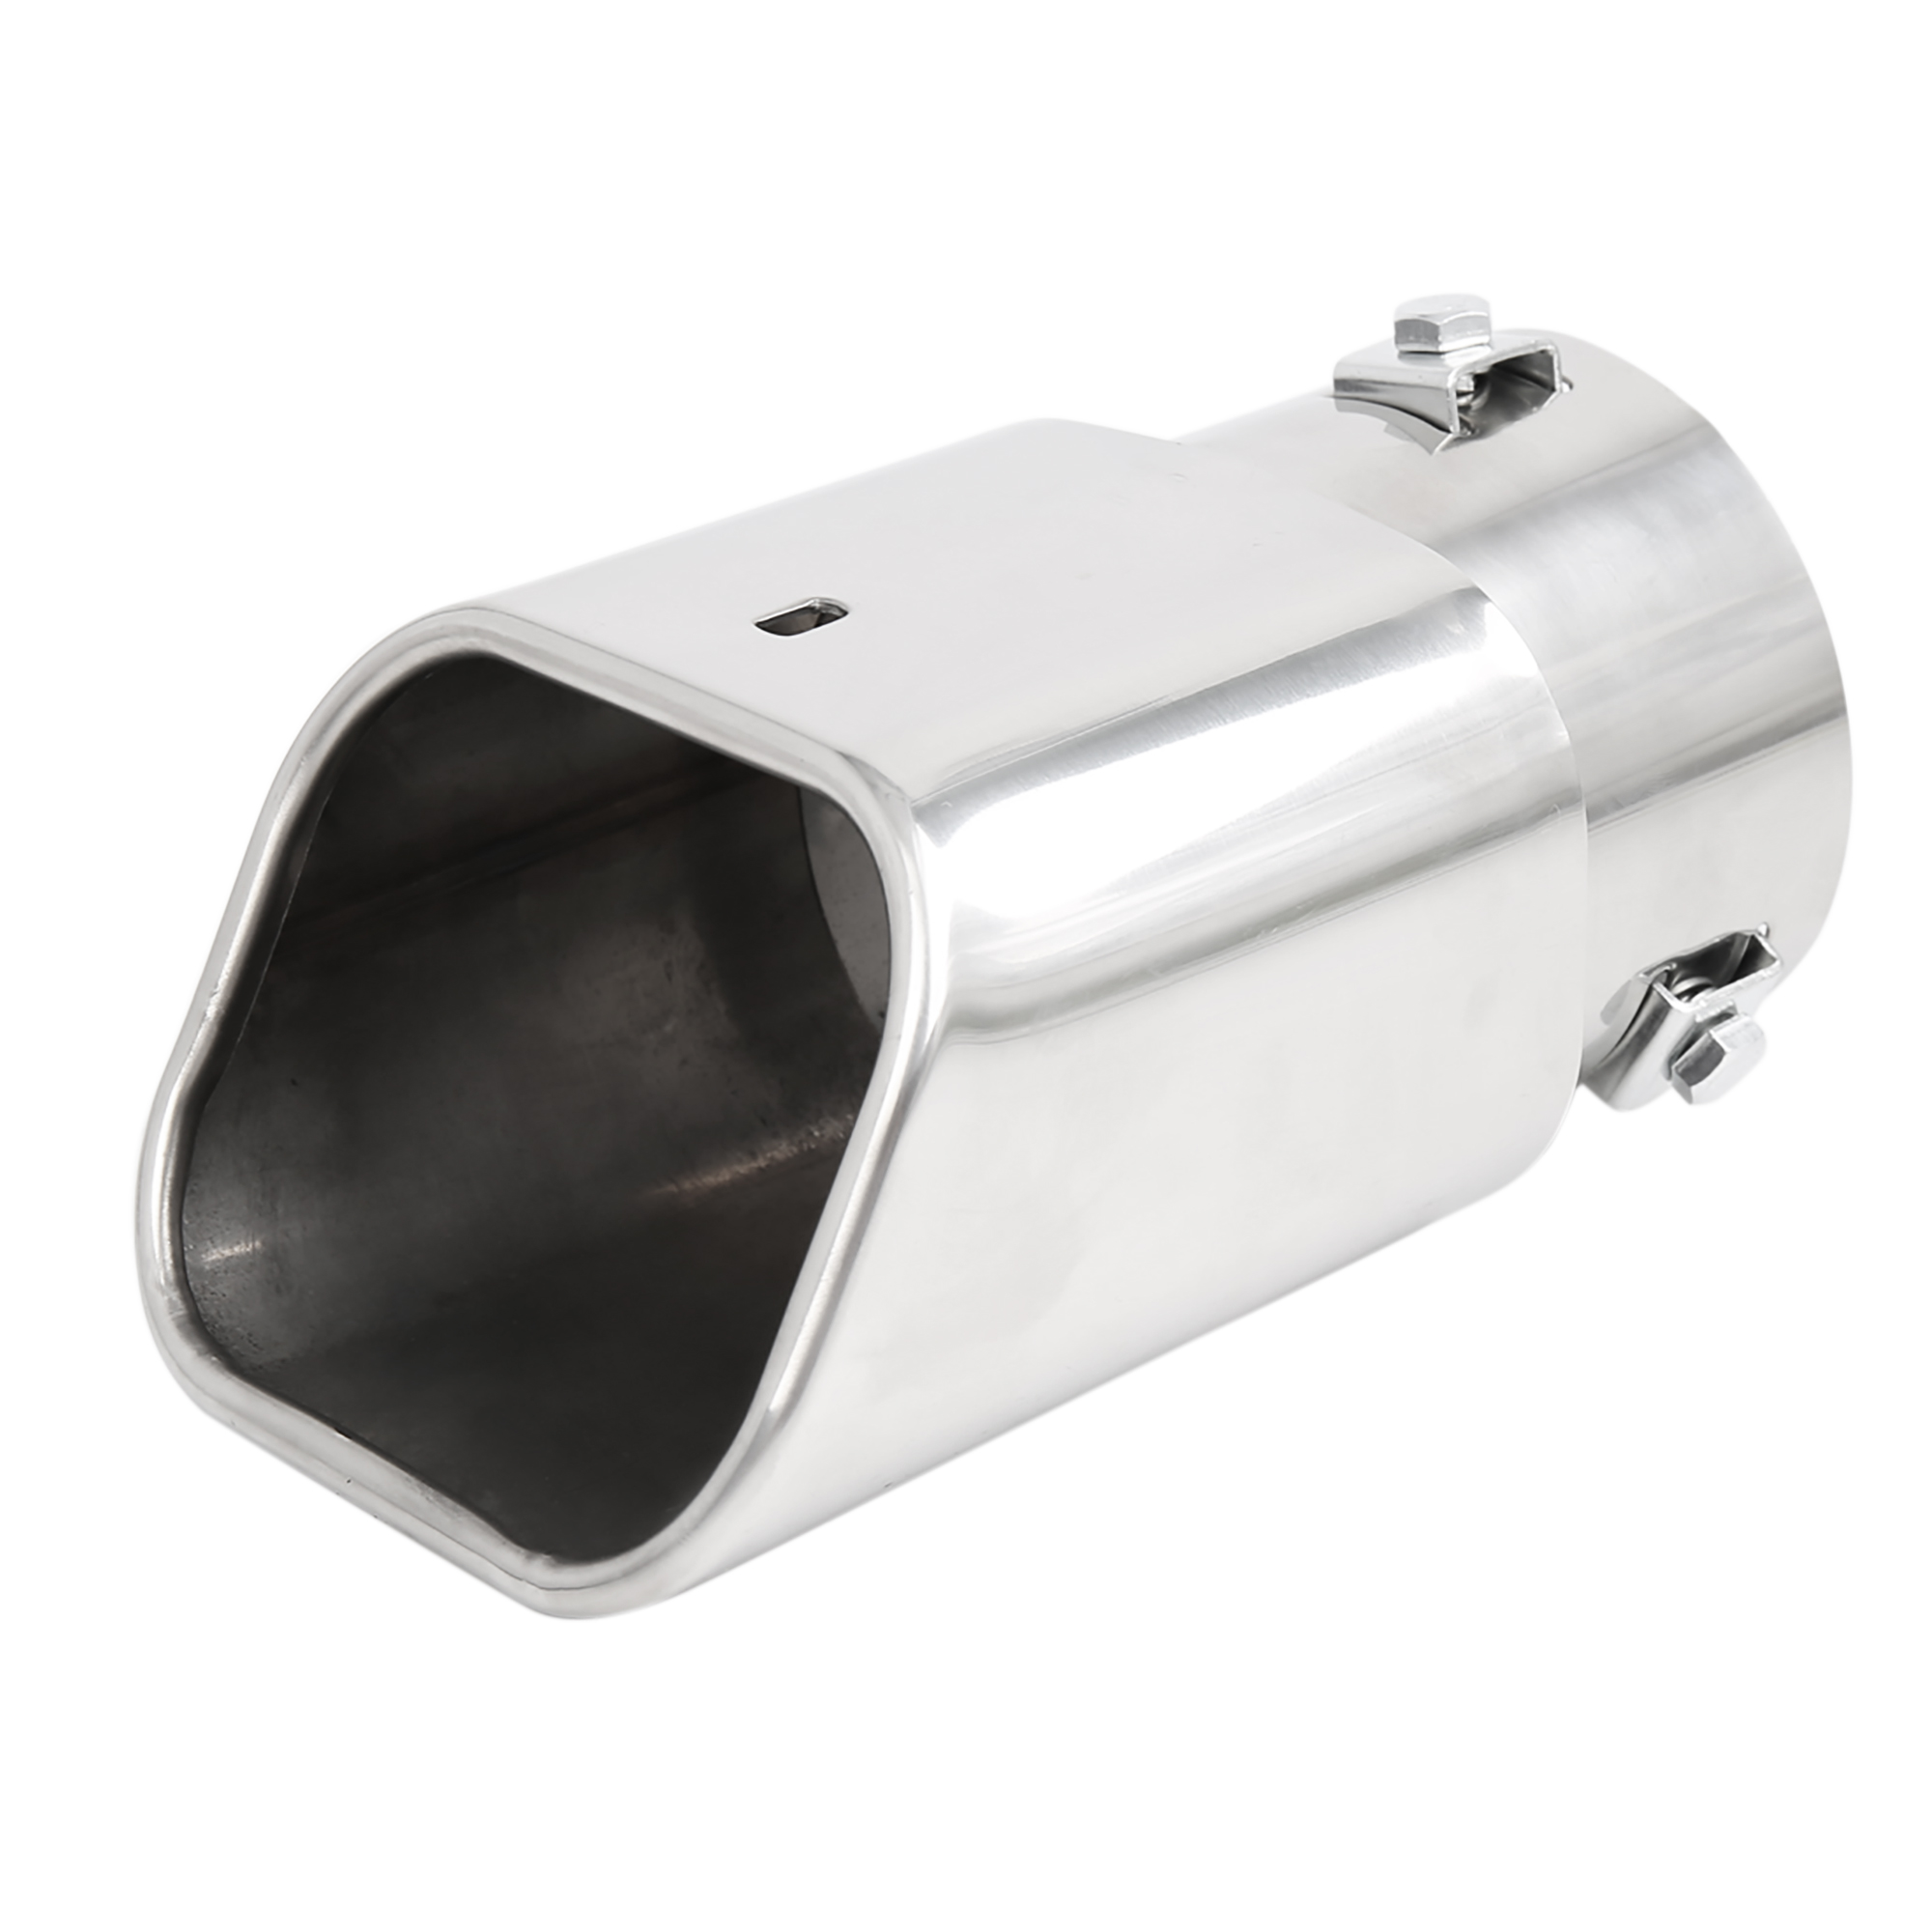 "Universal Fits Car Stainless Steel Chrome Square Outlet Exhaust Tail Muffler Tip Pipe Fit Diameter 1 3/4"" to 2 3/8"""